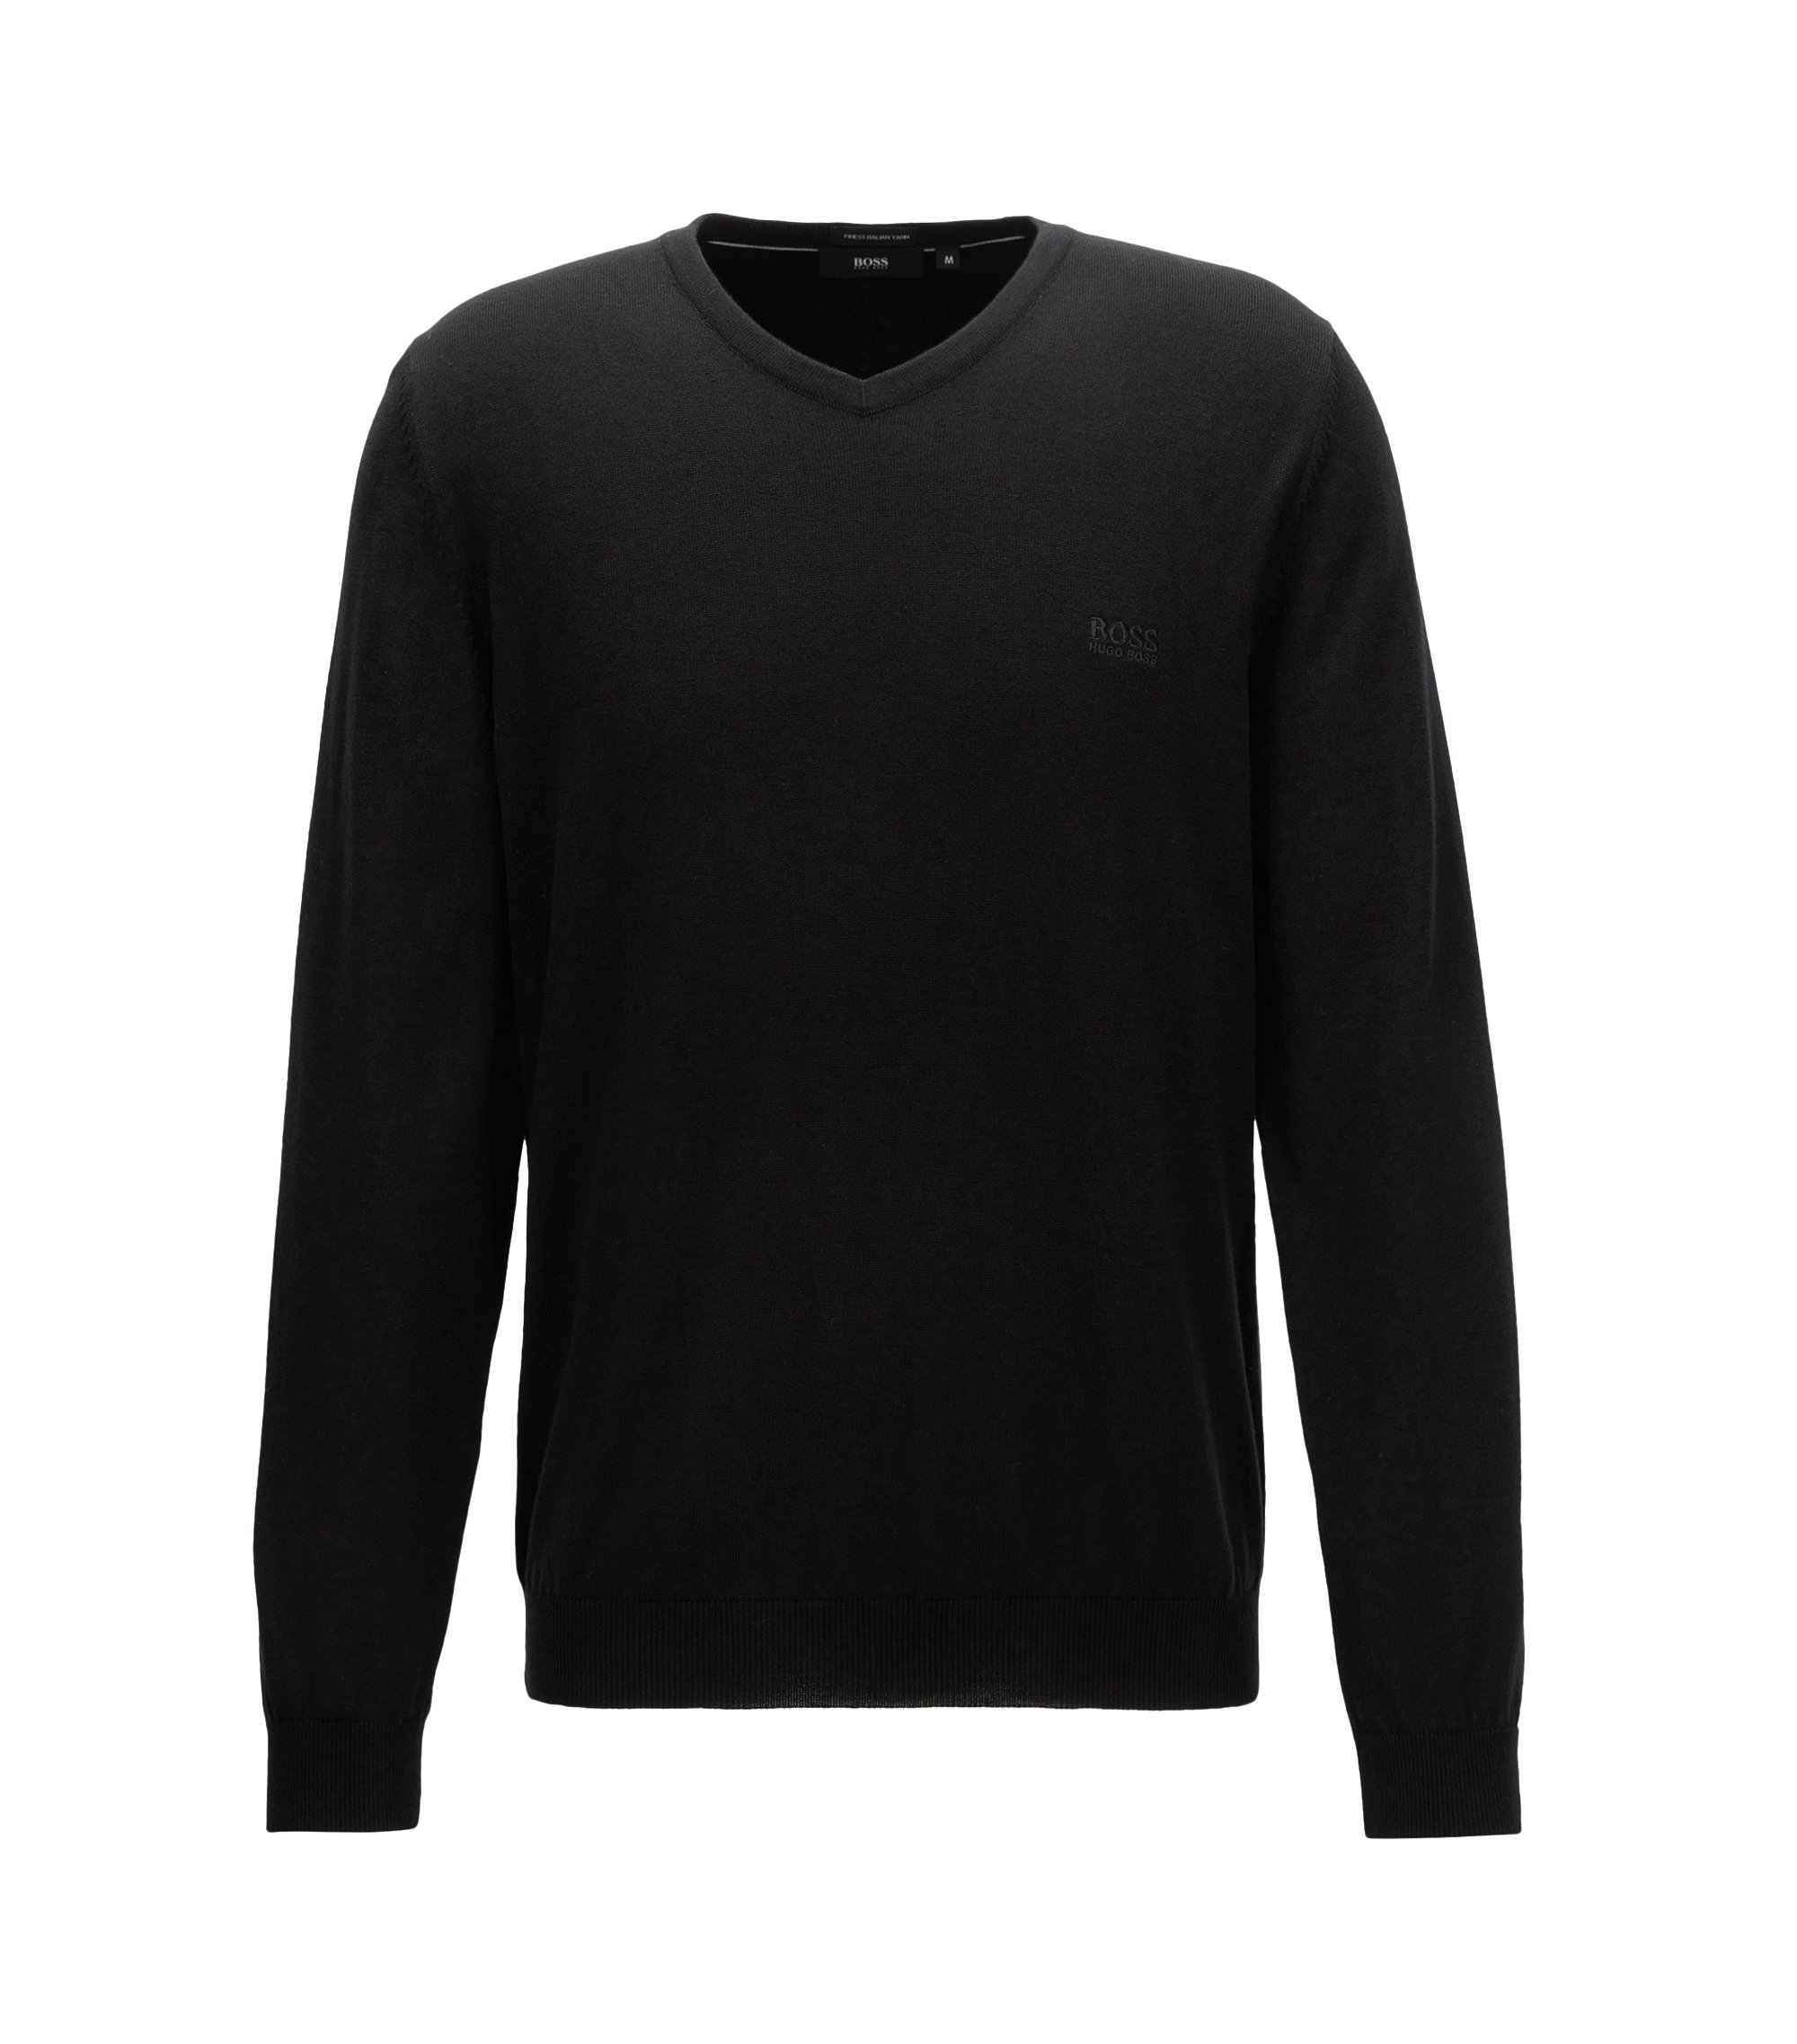 V-neck sweater in Italian cotton, Black